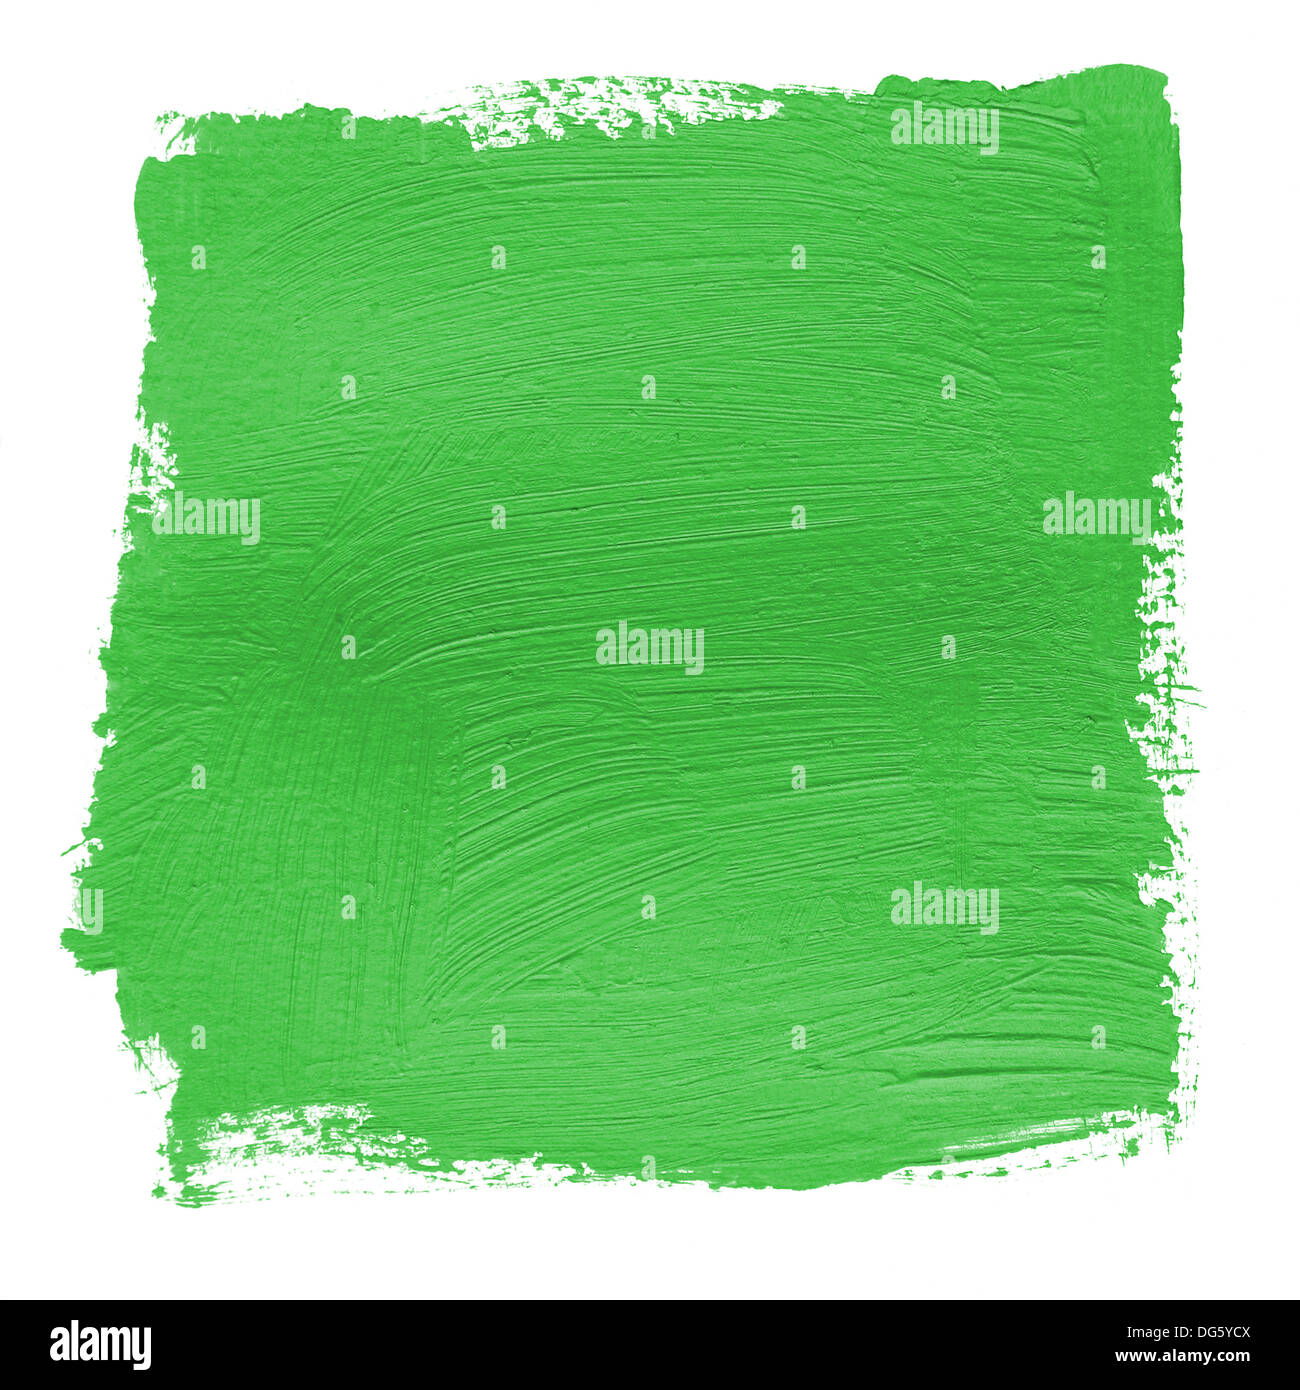 hand painted background with green acrylic paint - Stock Image